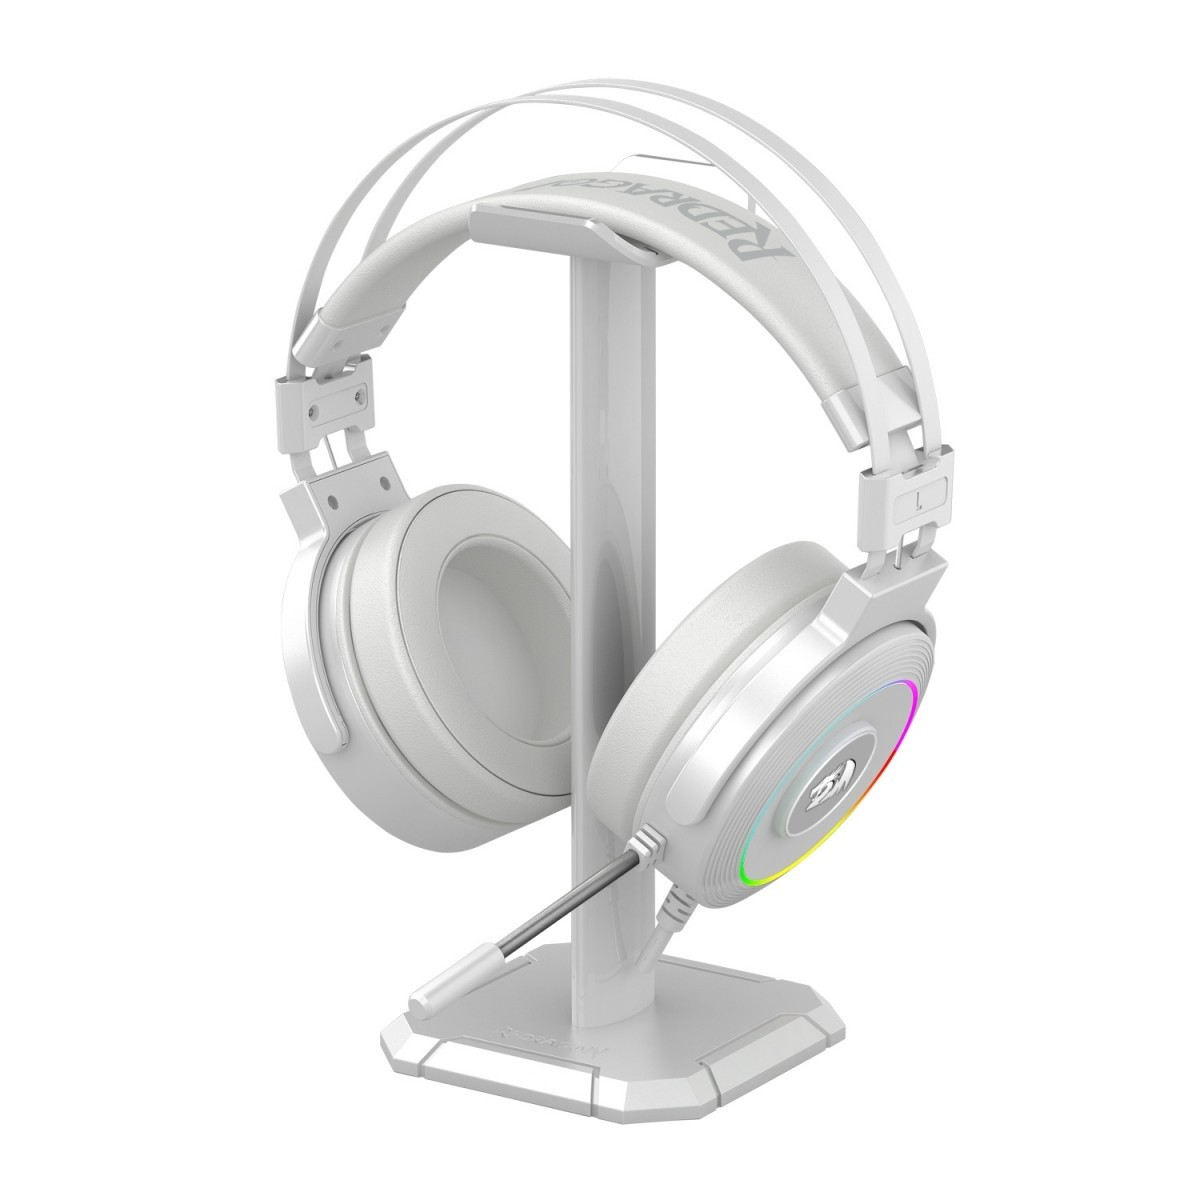 Headset Gamer Redragon Lamia Lunar White H320 RGB, Surround 7.1, Branco, H320W-RGB